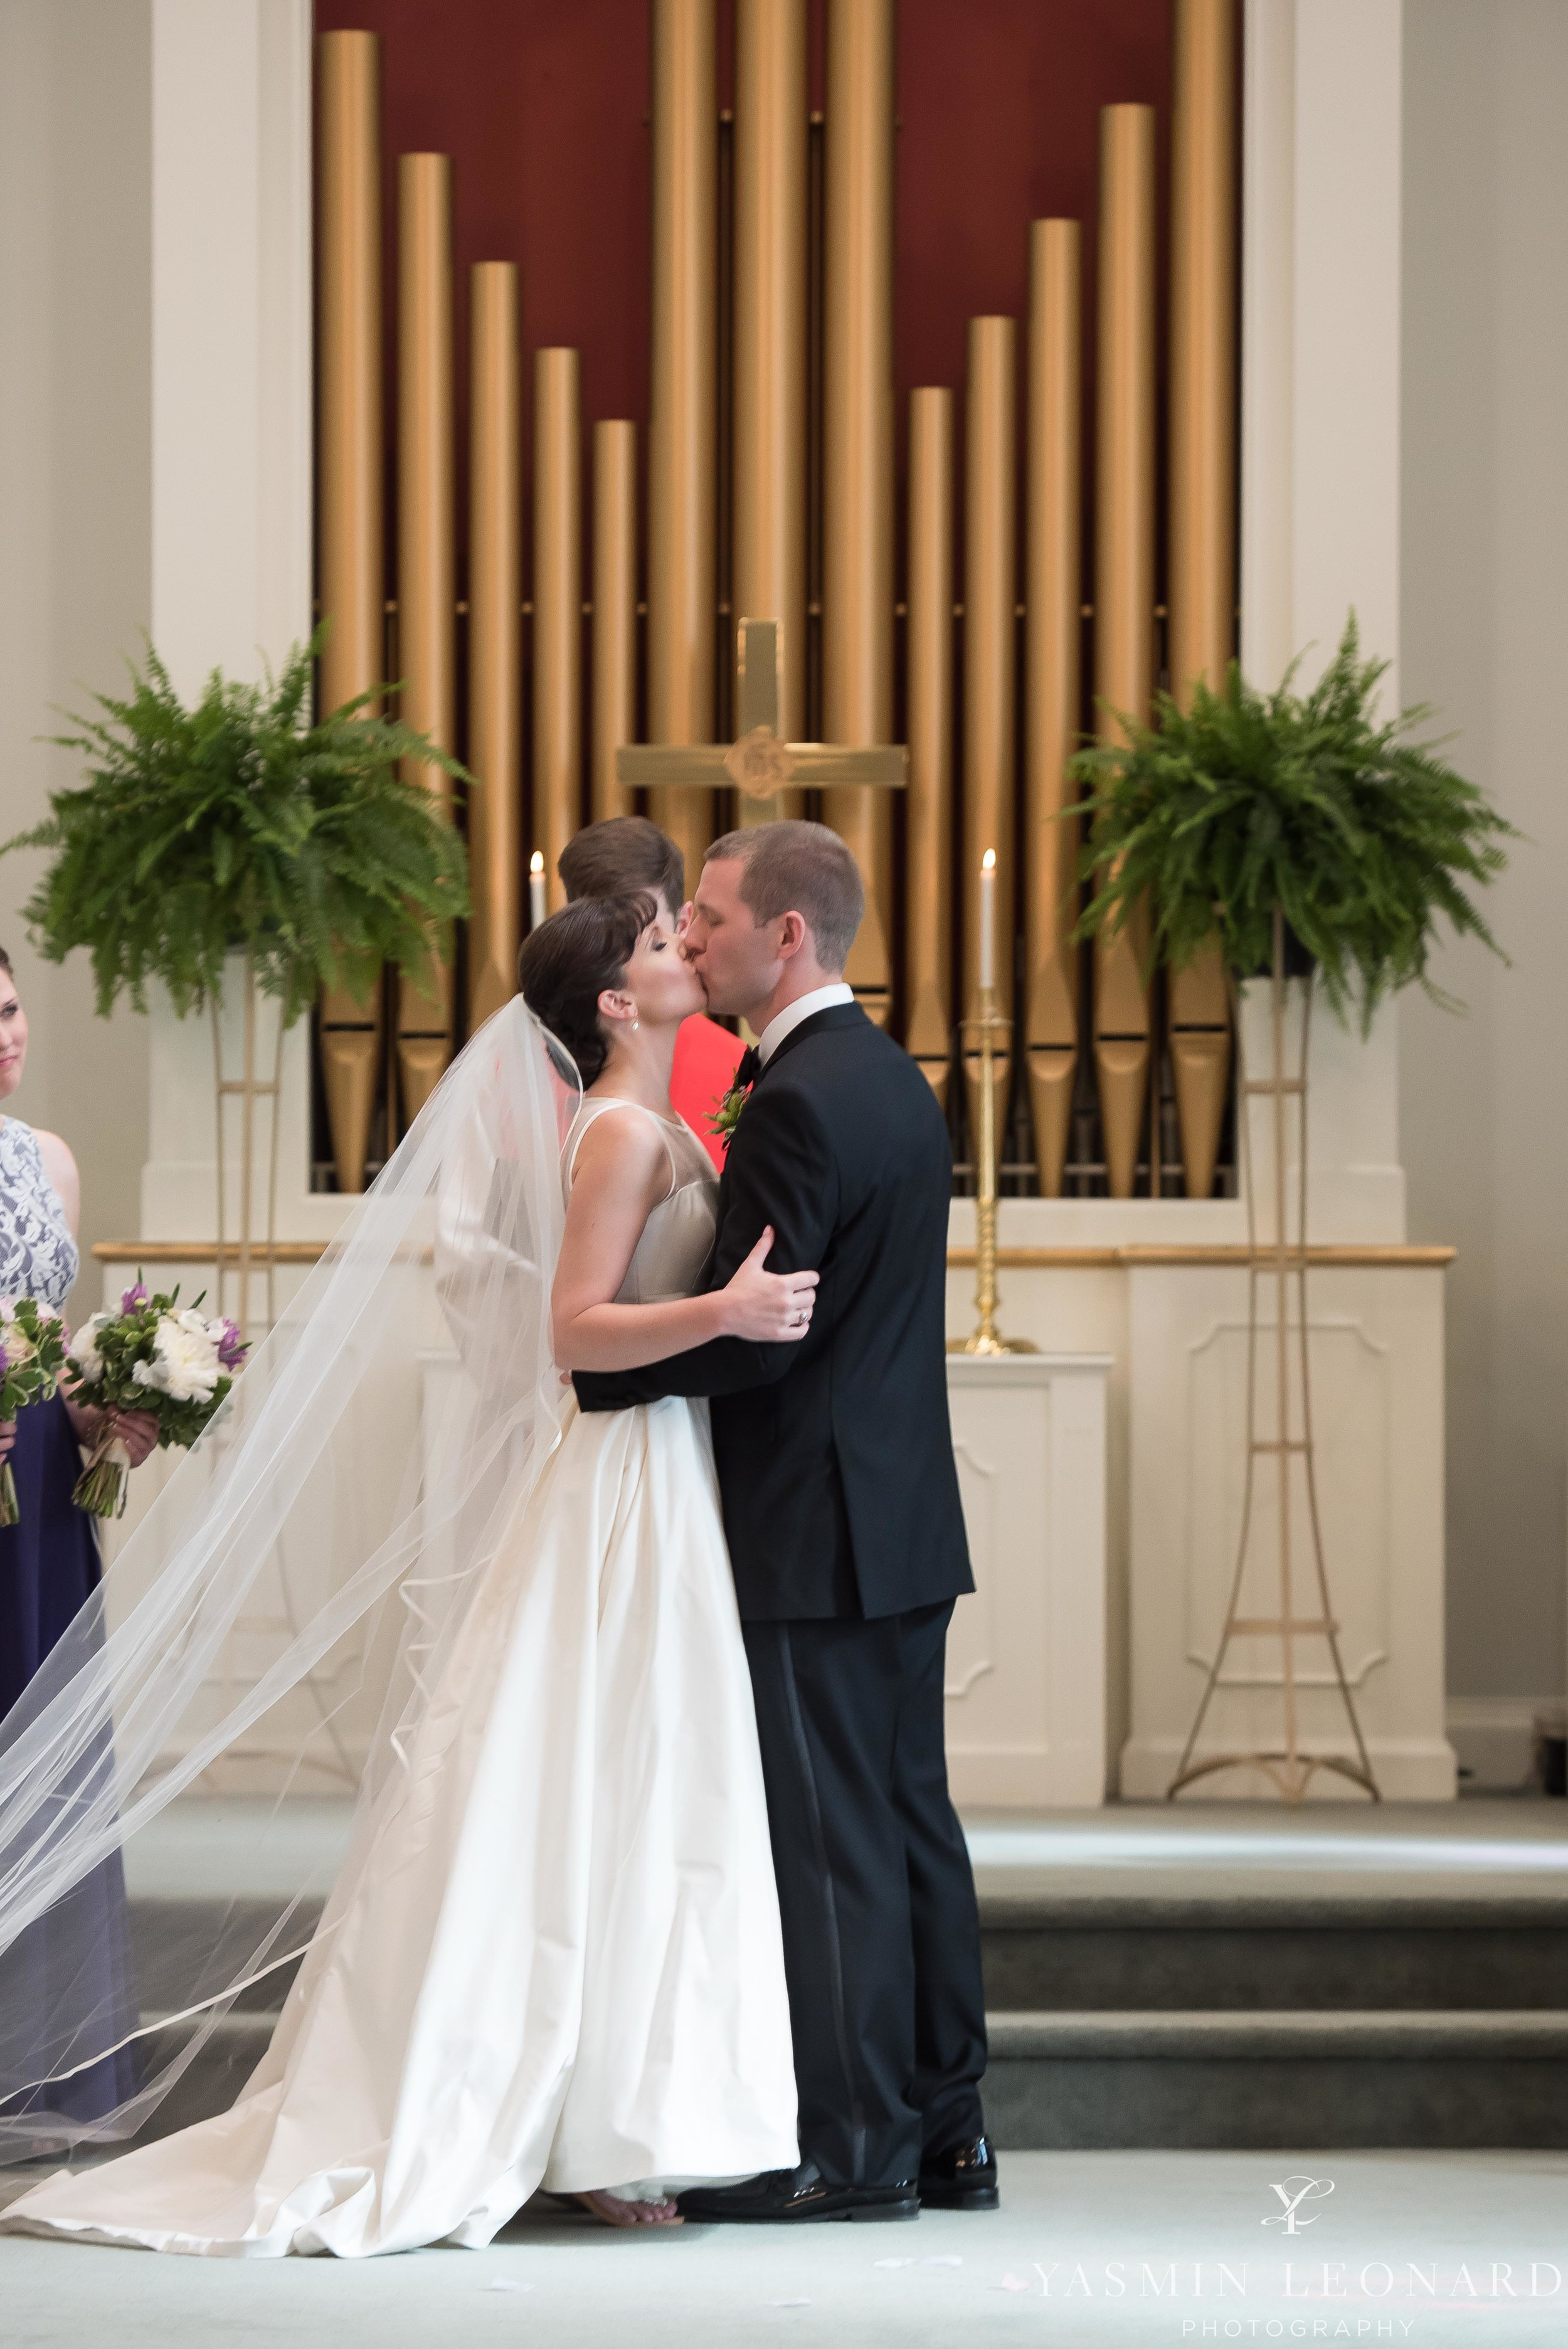 JH ADAMS INN - HIGH POINT UNIVERSITY CHAPEL WEDDING - HPU CHAPEL - HIGH POINT WEDDINGS - NC WEDDING PHOTOGRAPHER - YASMIN LEONARD PHOTOGRAPHY - HIGH POINT NC - HIGH POINT WEDDINGS -33.jpg